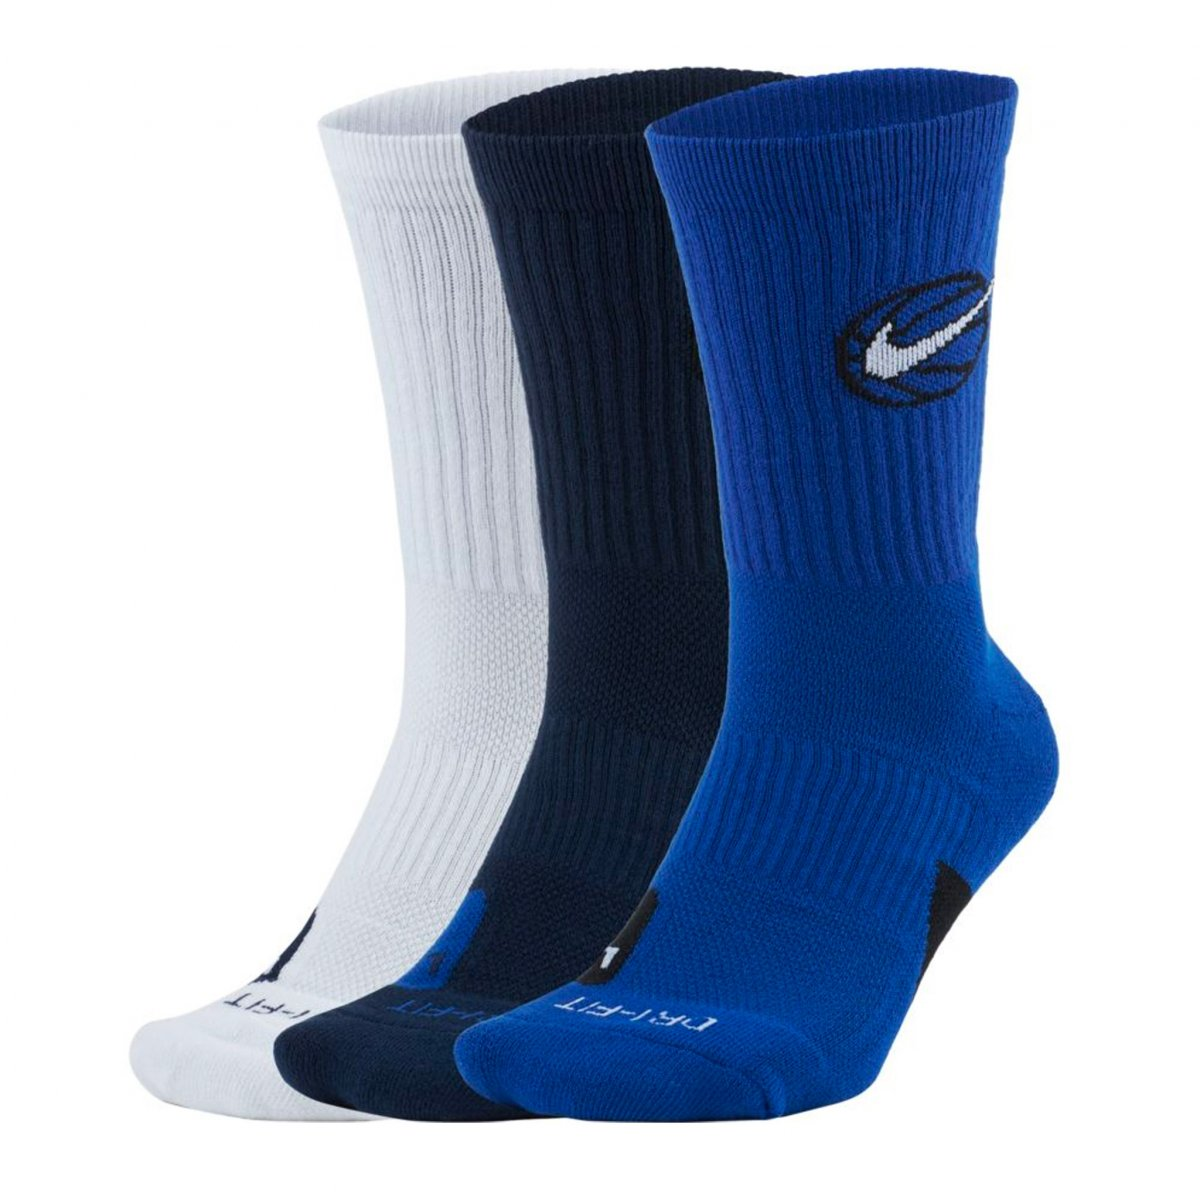 Calcetines Nike Everyday Crew 3 Pares